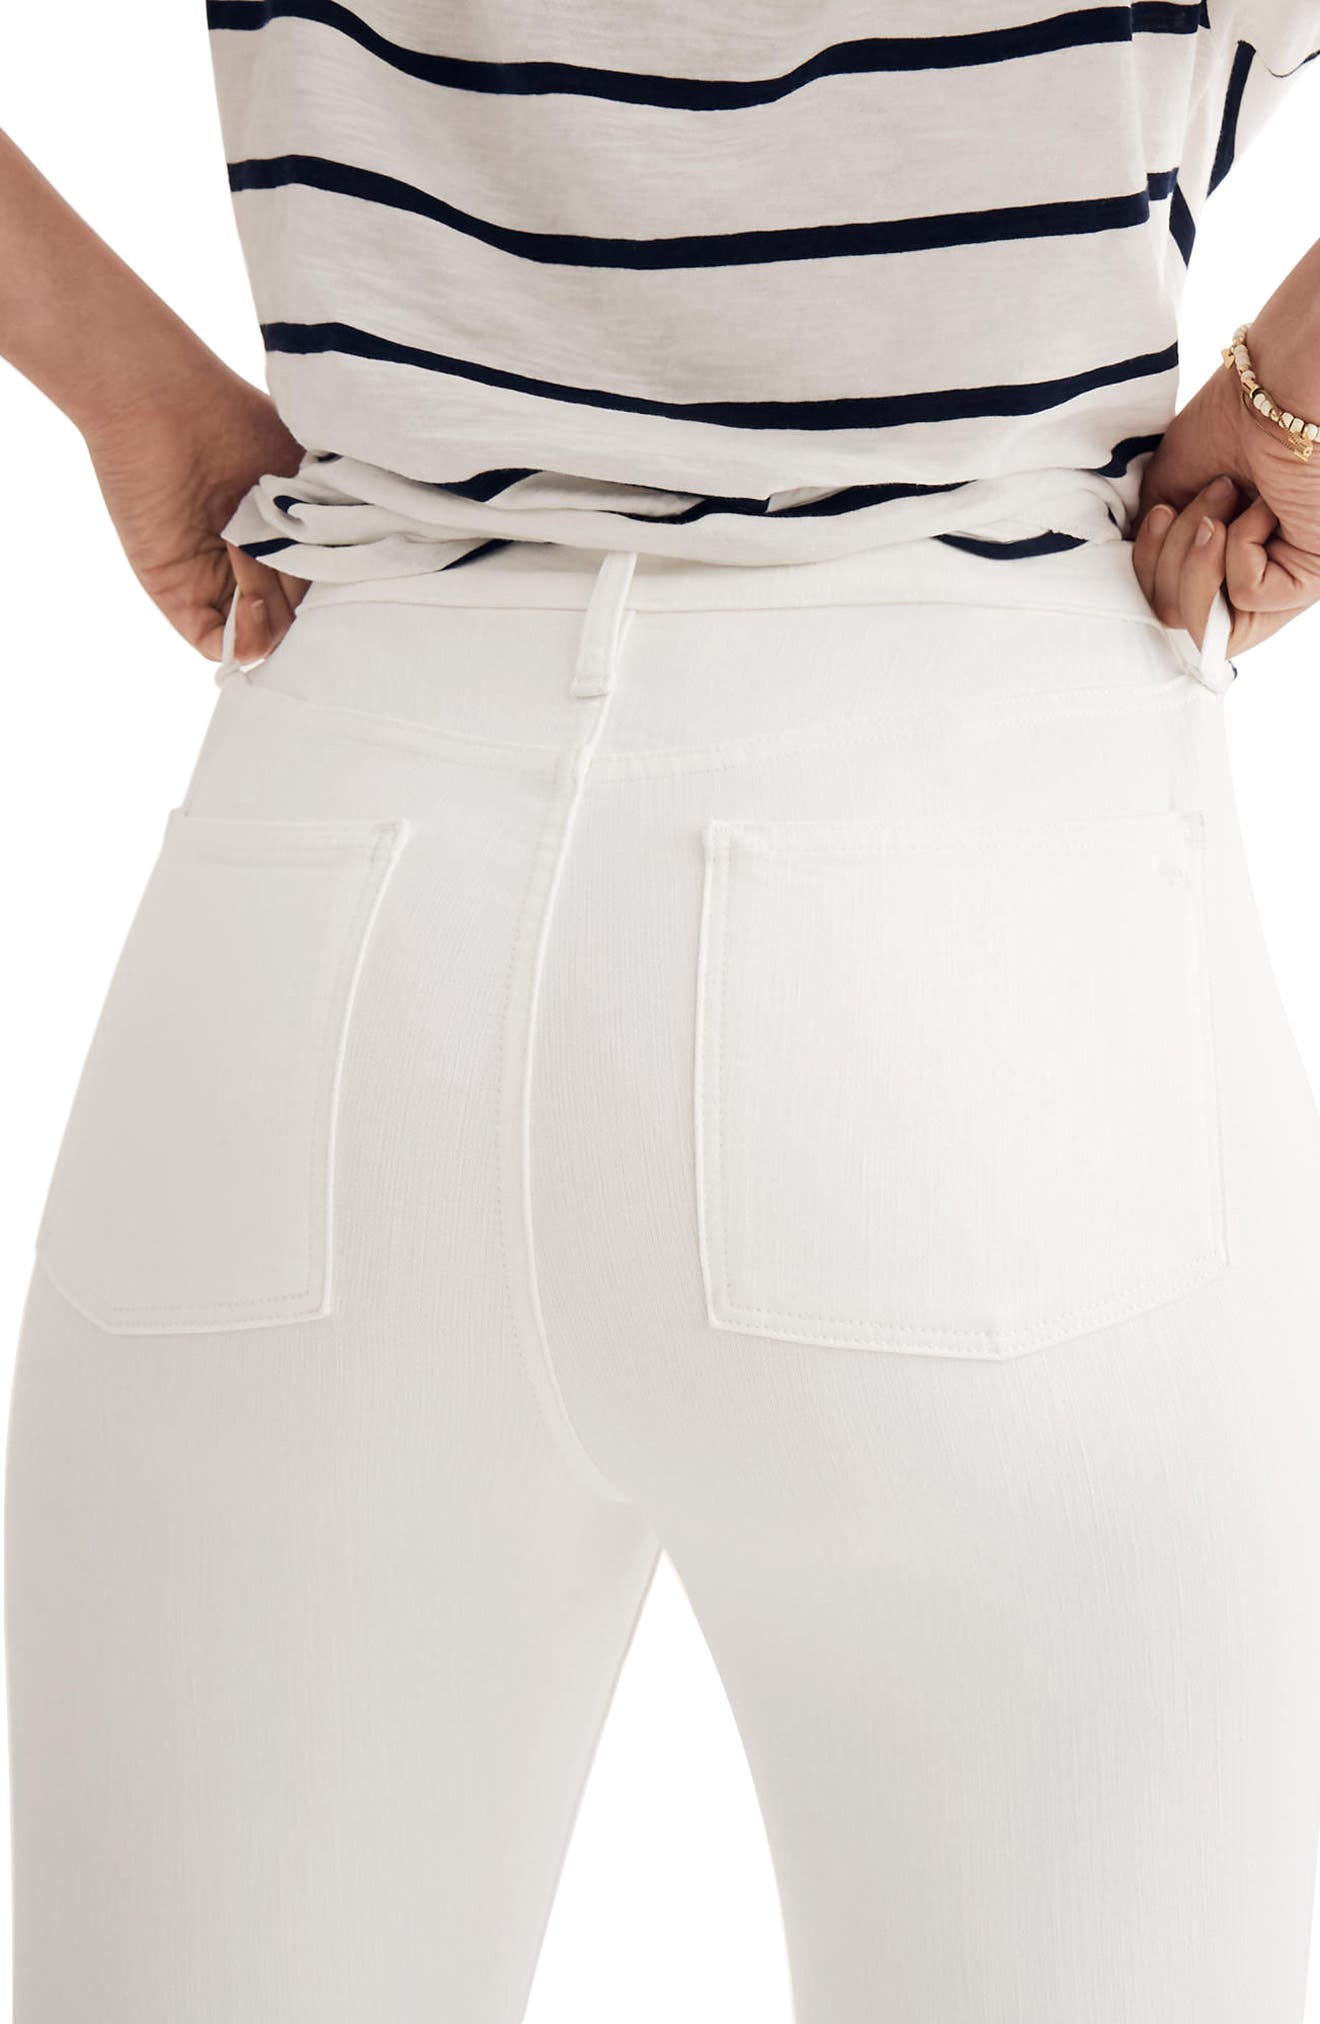 9-Inch High Waist Skinny Jeans,                             Alternate thumbnail 4, color,                             PURE WHITE